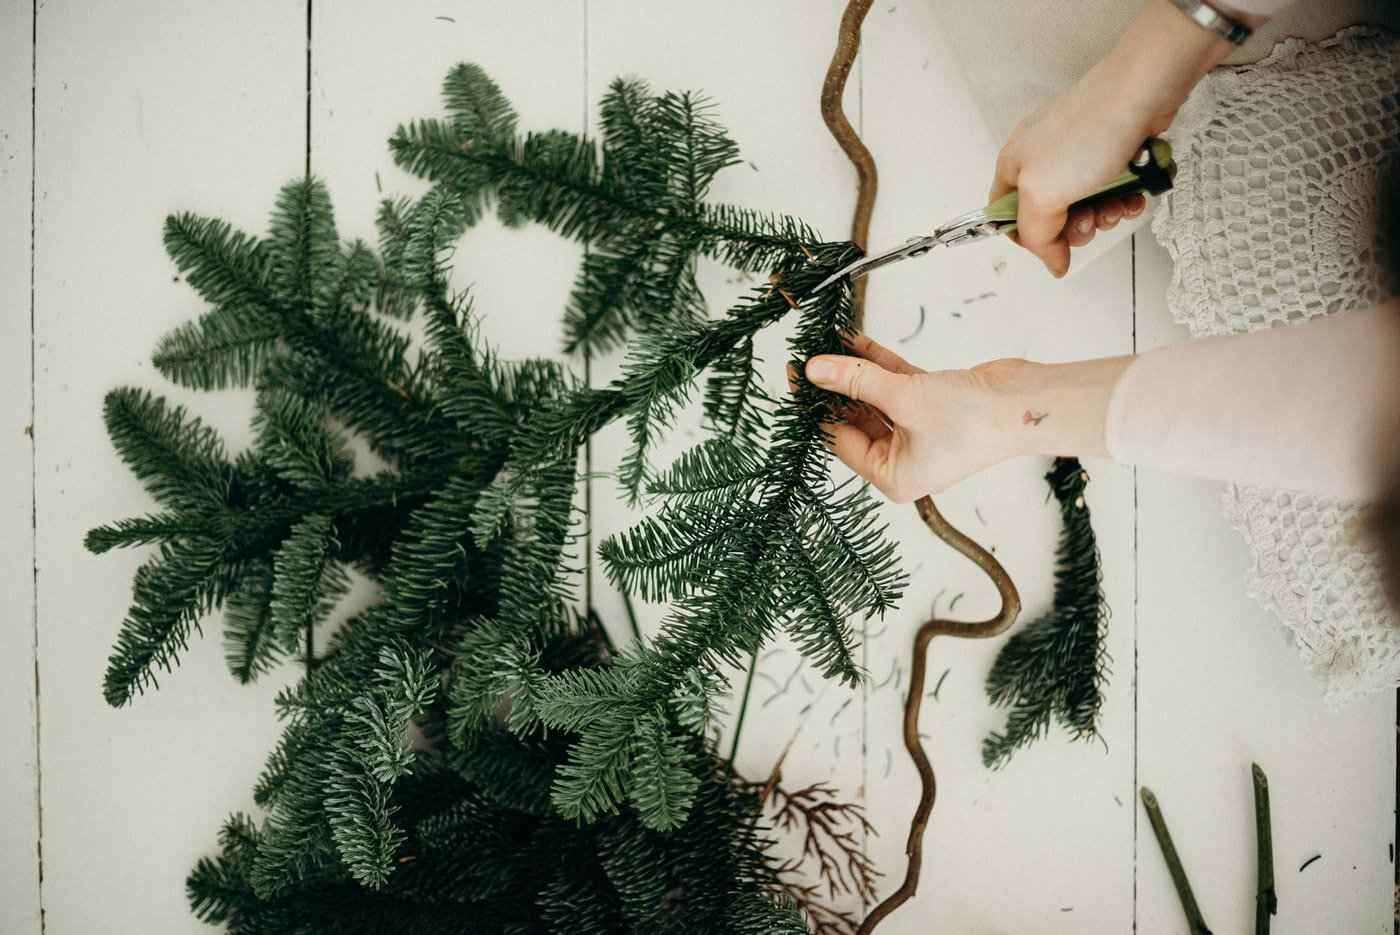 woman cutting fir bough - bring natural greenery in for the holidays